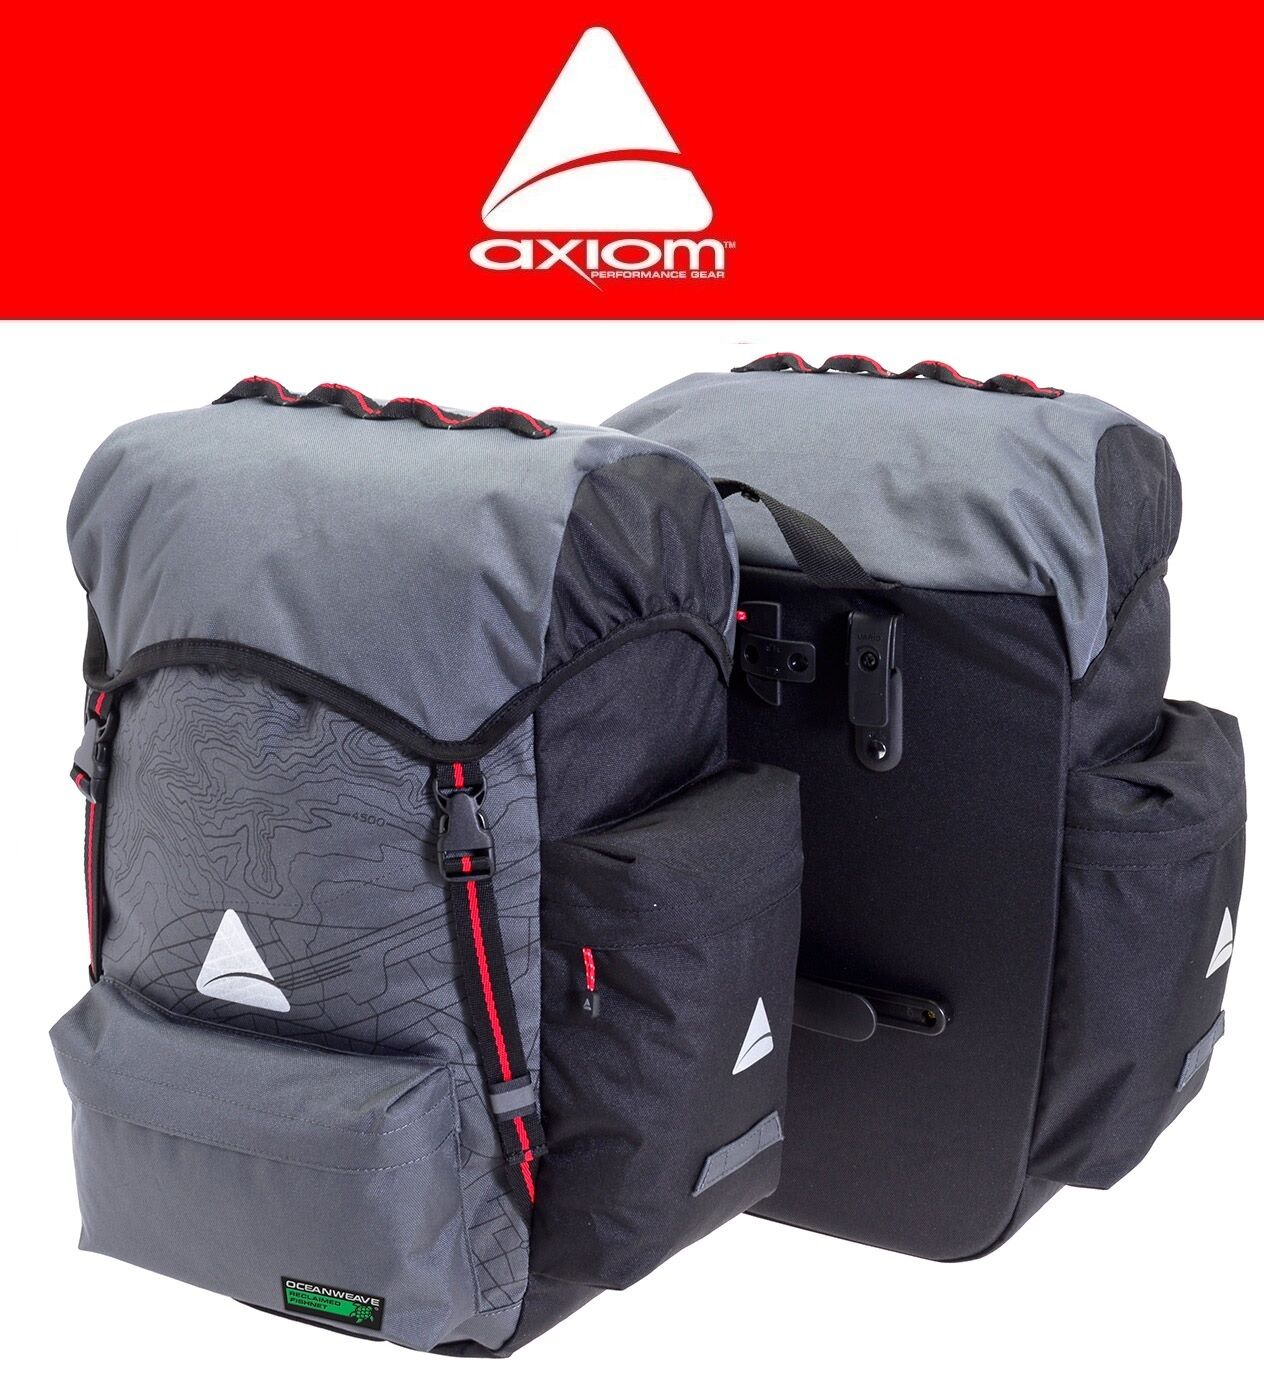 Axiom Seymour Bags Oceanweave P55+ Bike Panniers Pair Commuter Bags Seymour Touring Saddlebag 2f8255